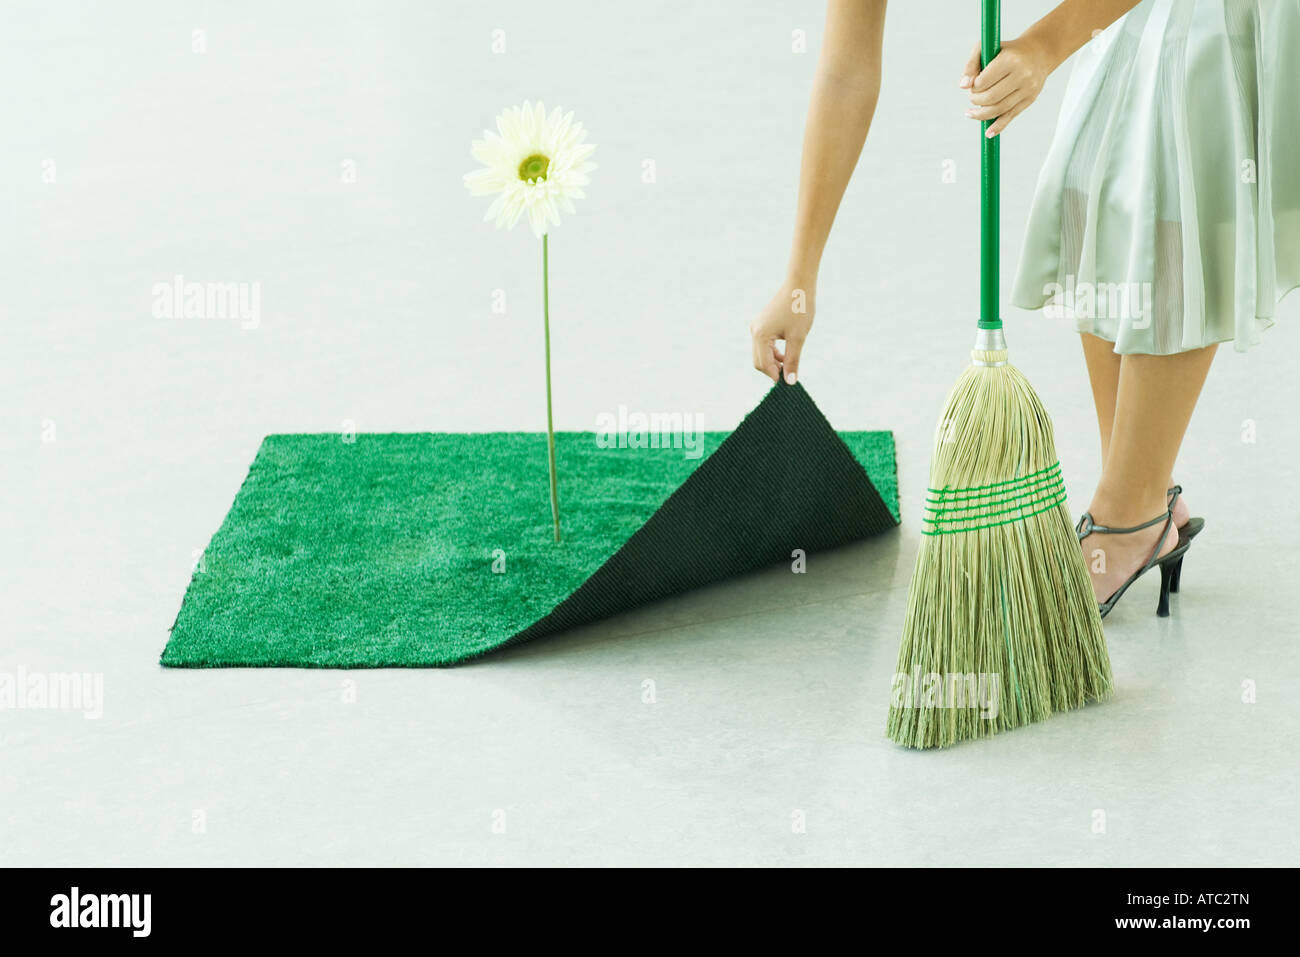 Woman sweeping under artificial turf rug, waist down - Stock Image